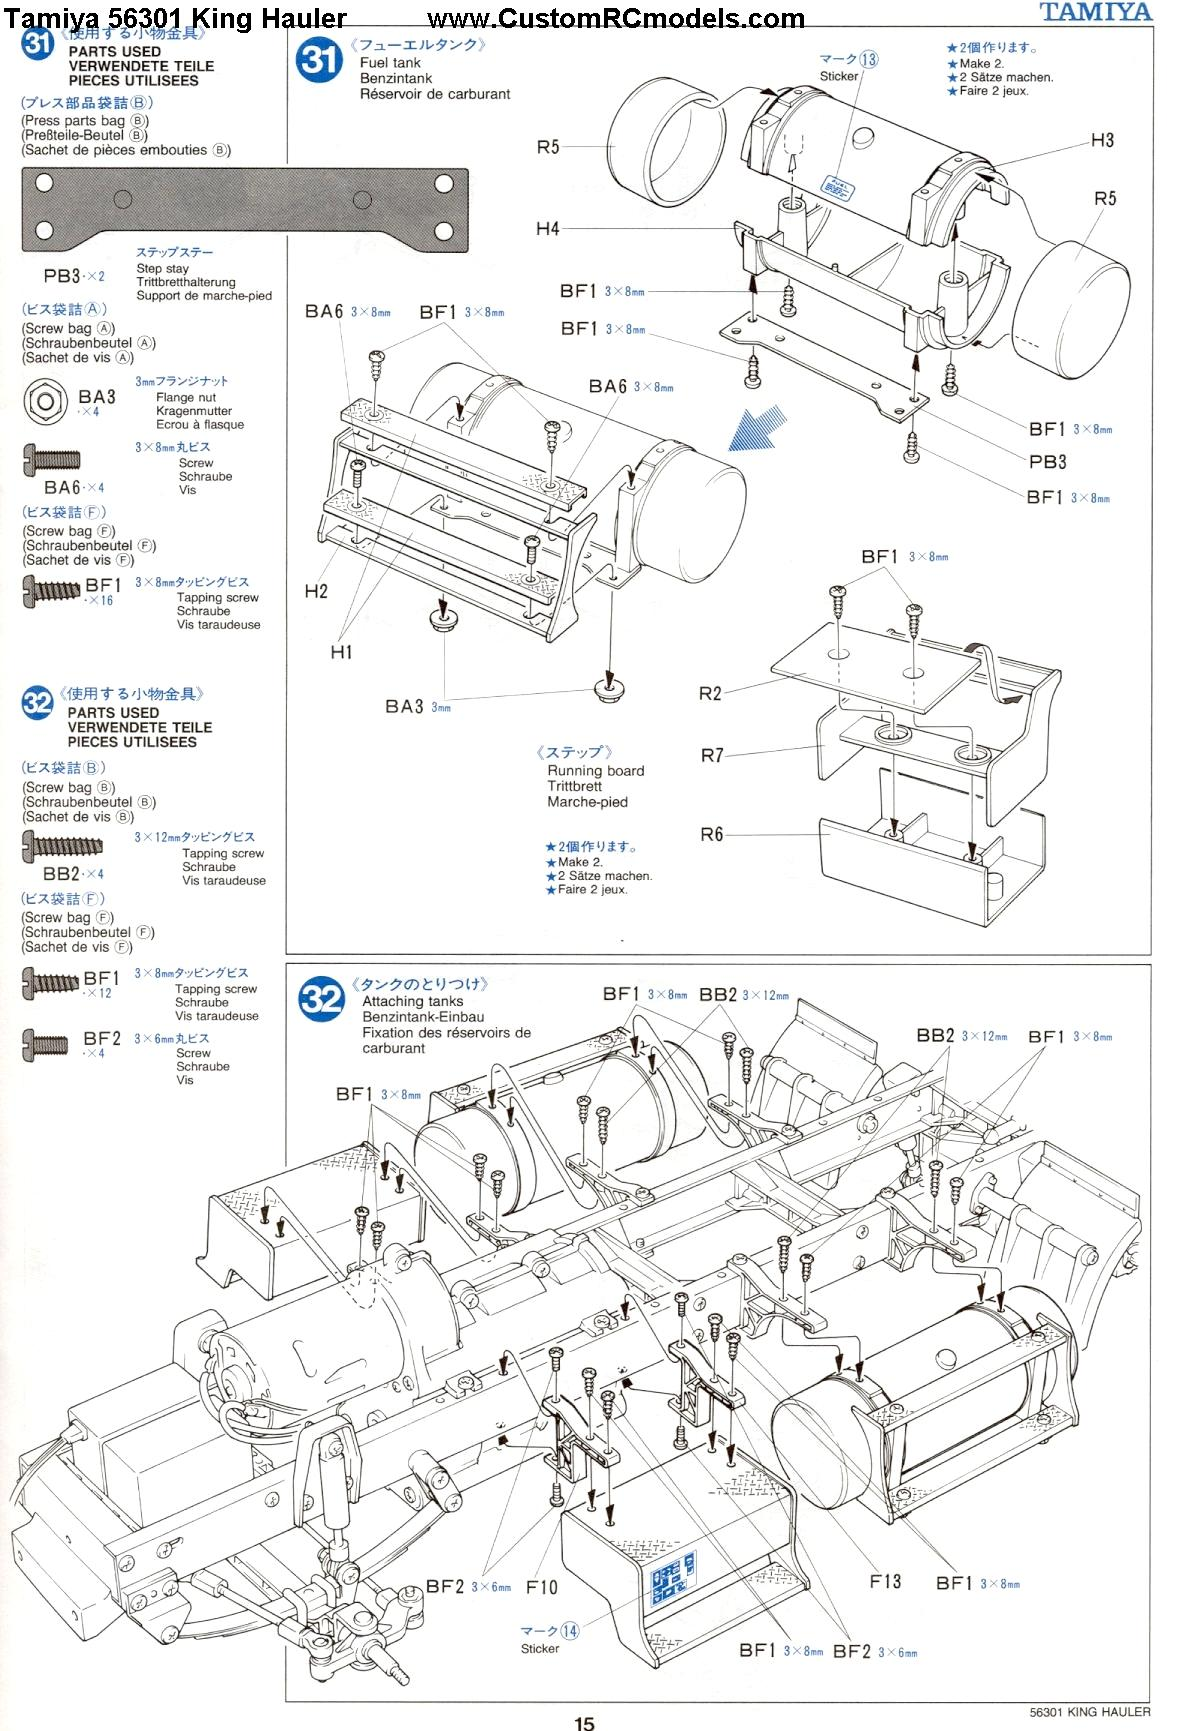 tamiya king hauler manual pdf